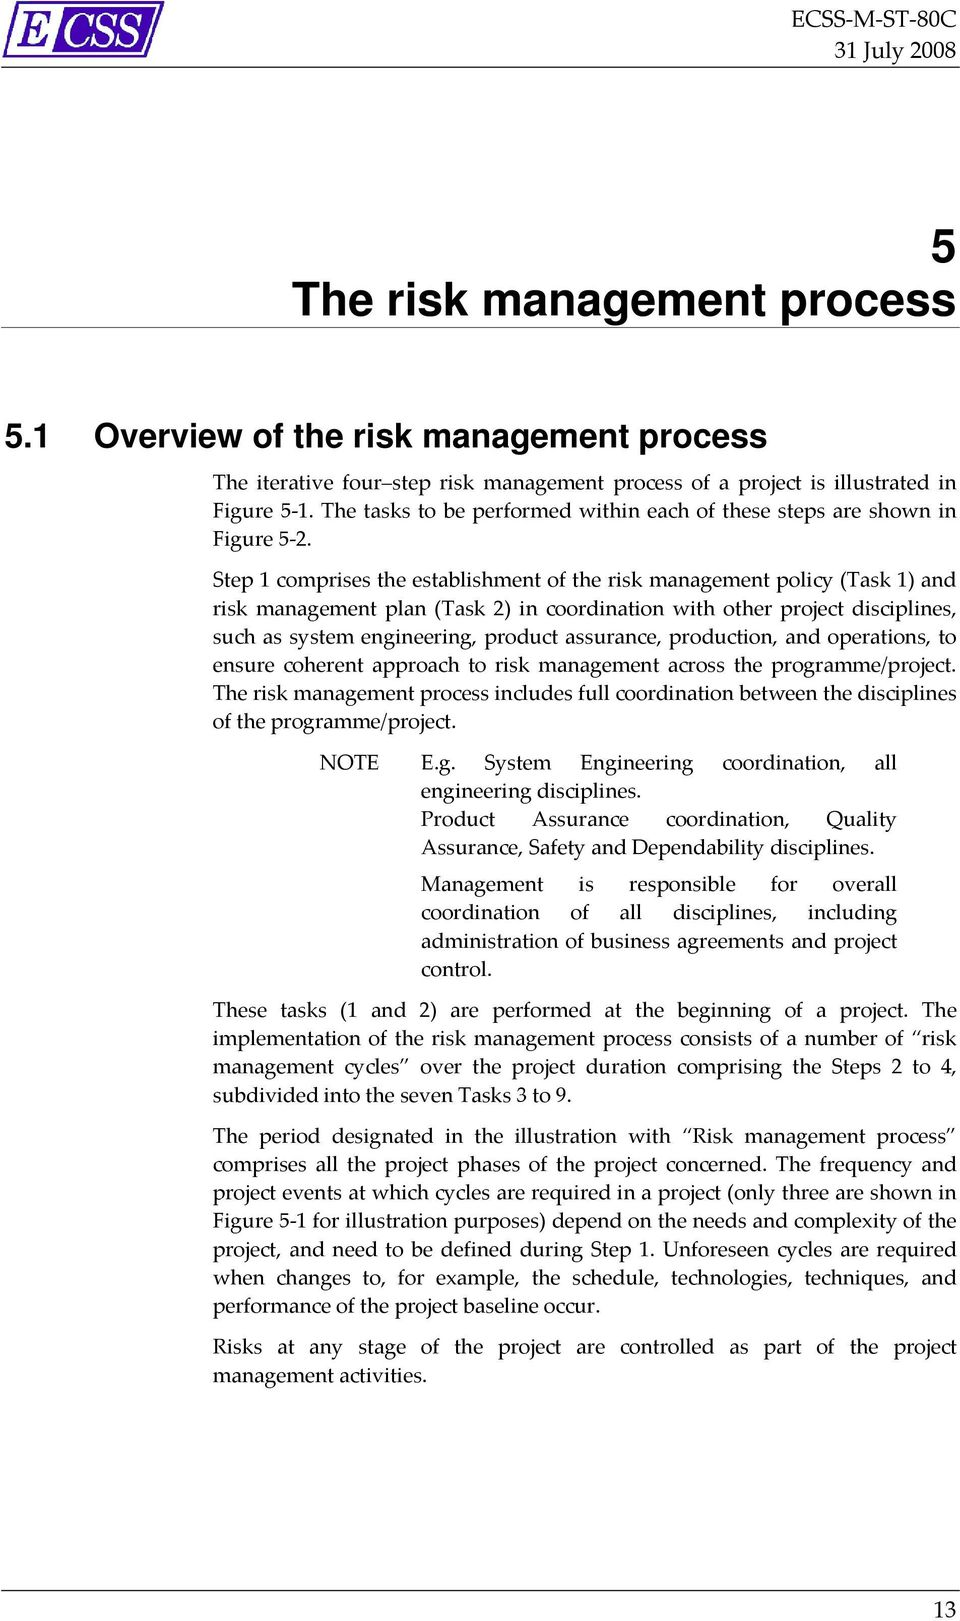 Step 1 comprises the establishment of the risk management policy (Task 1) and risk management plan (Task 2) in coordination with other project disciplines, such as system engineering, product